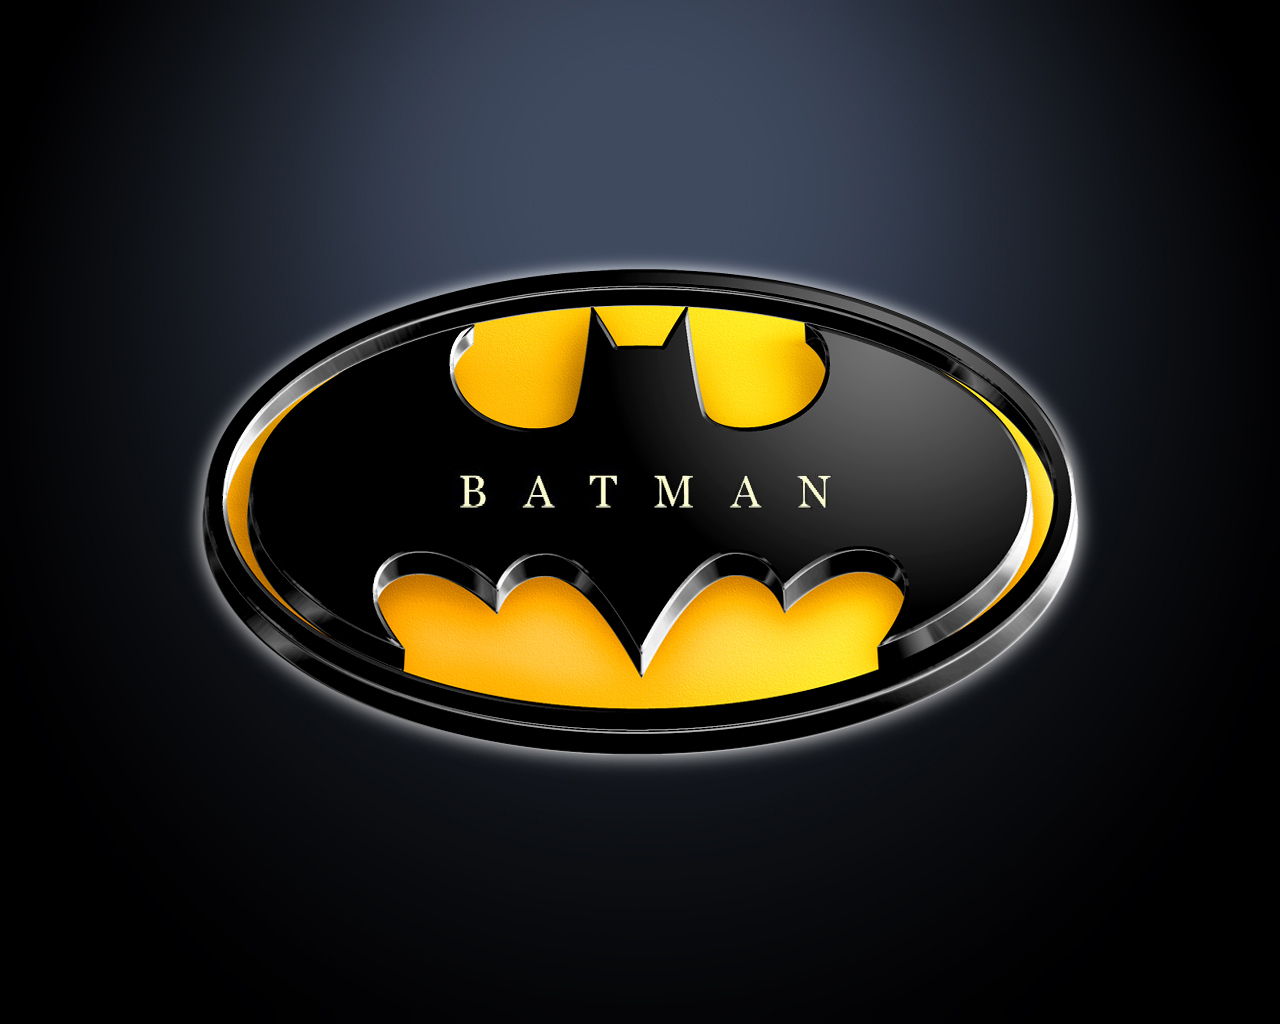 Batman Images Batman Logo Hd Wallpaper And Background: batman symbol